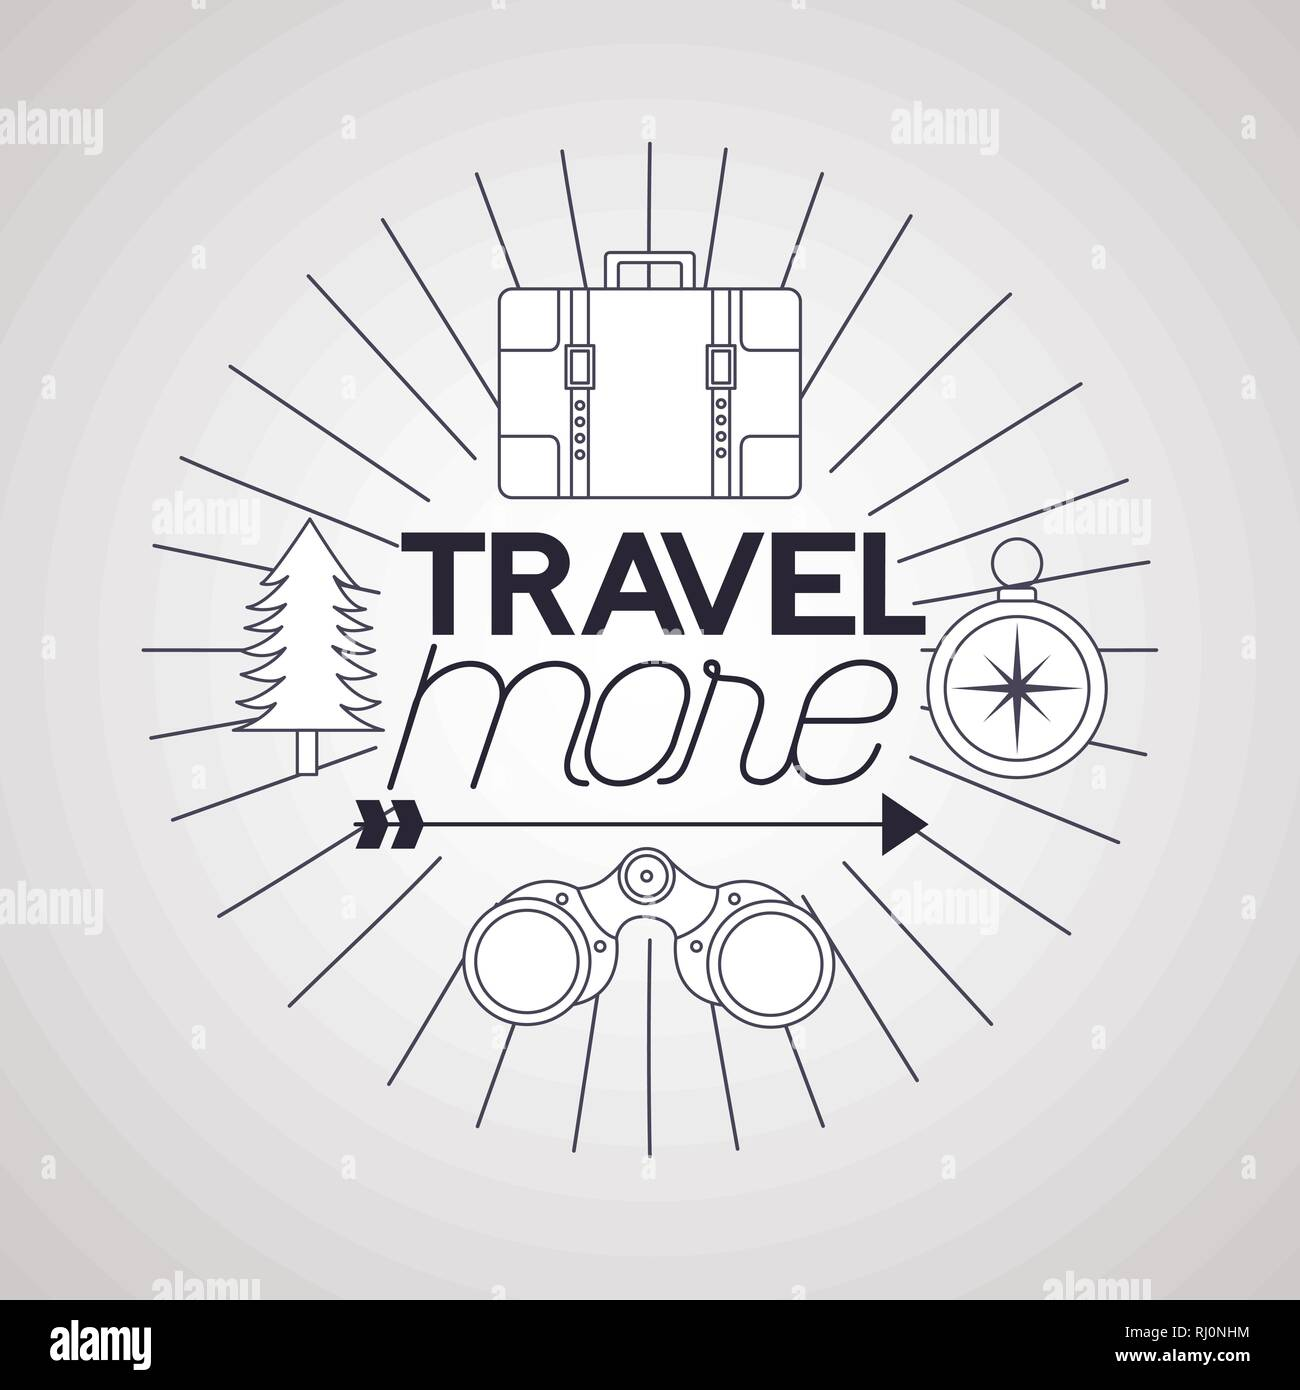 travel more background - Stock Vector